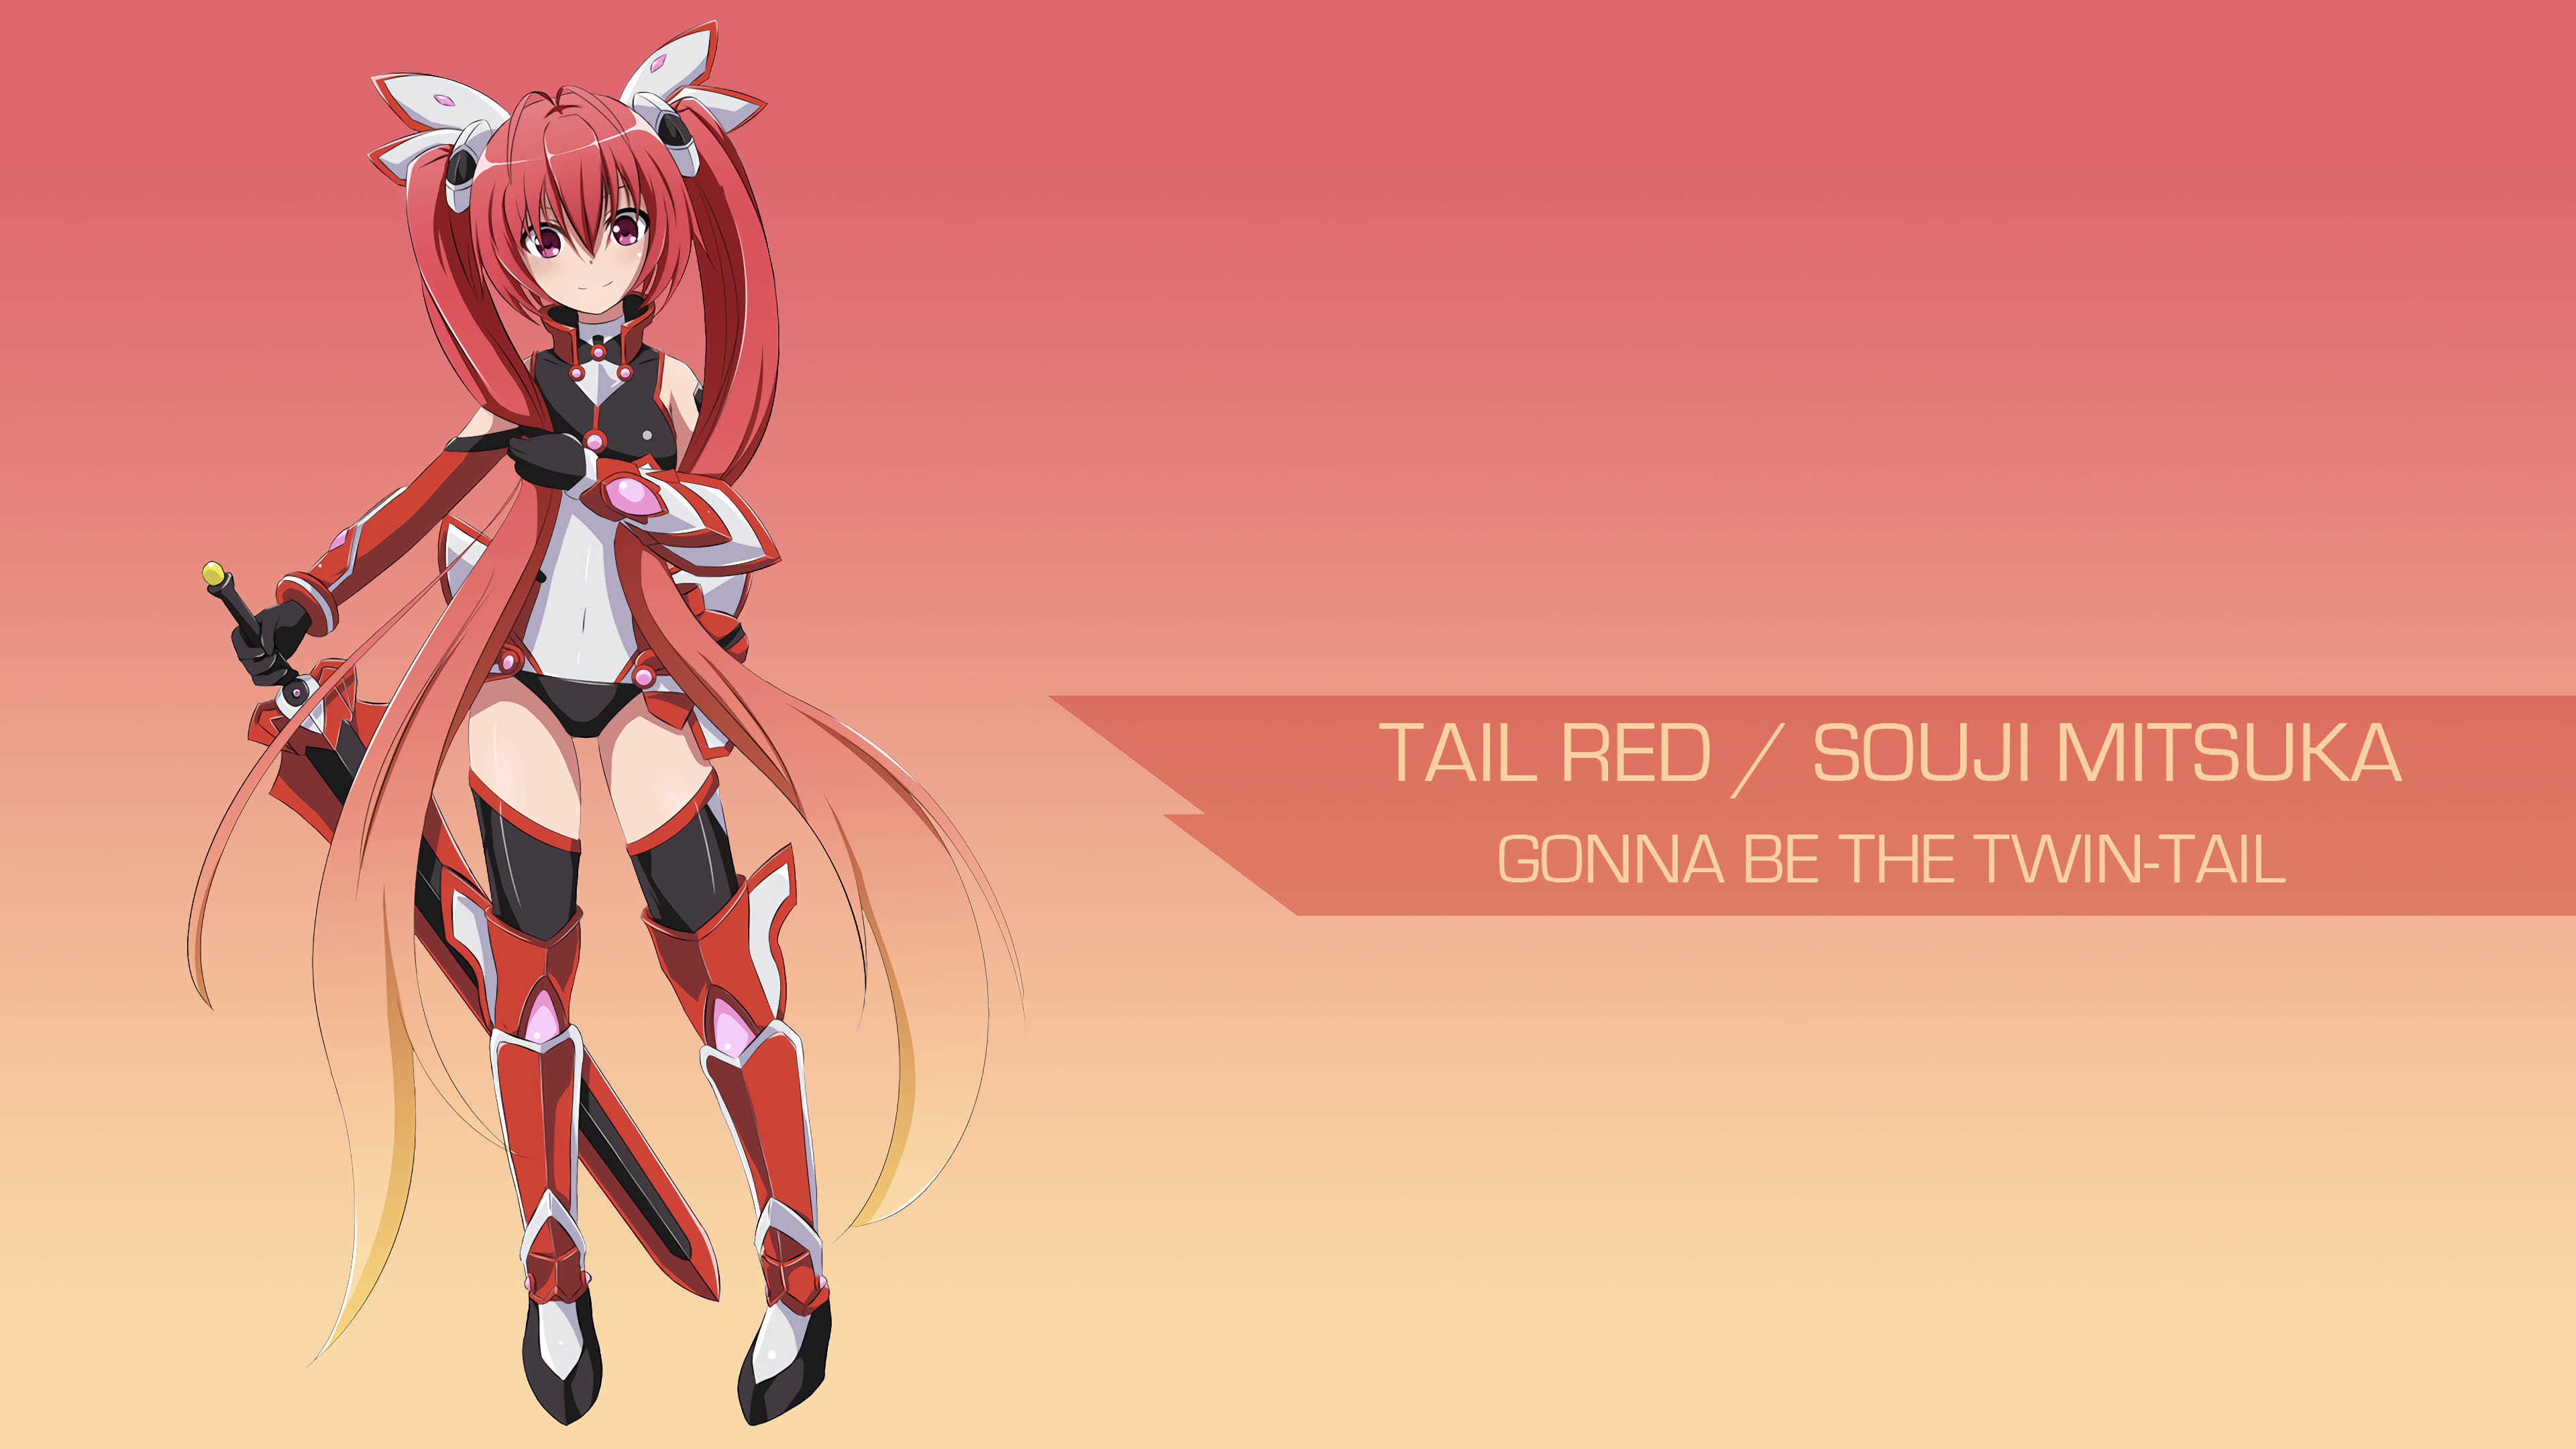 tail red souji mitsuka gonna be the twin tail uhd 4k wallpaper